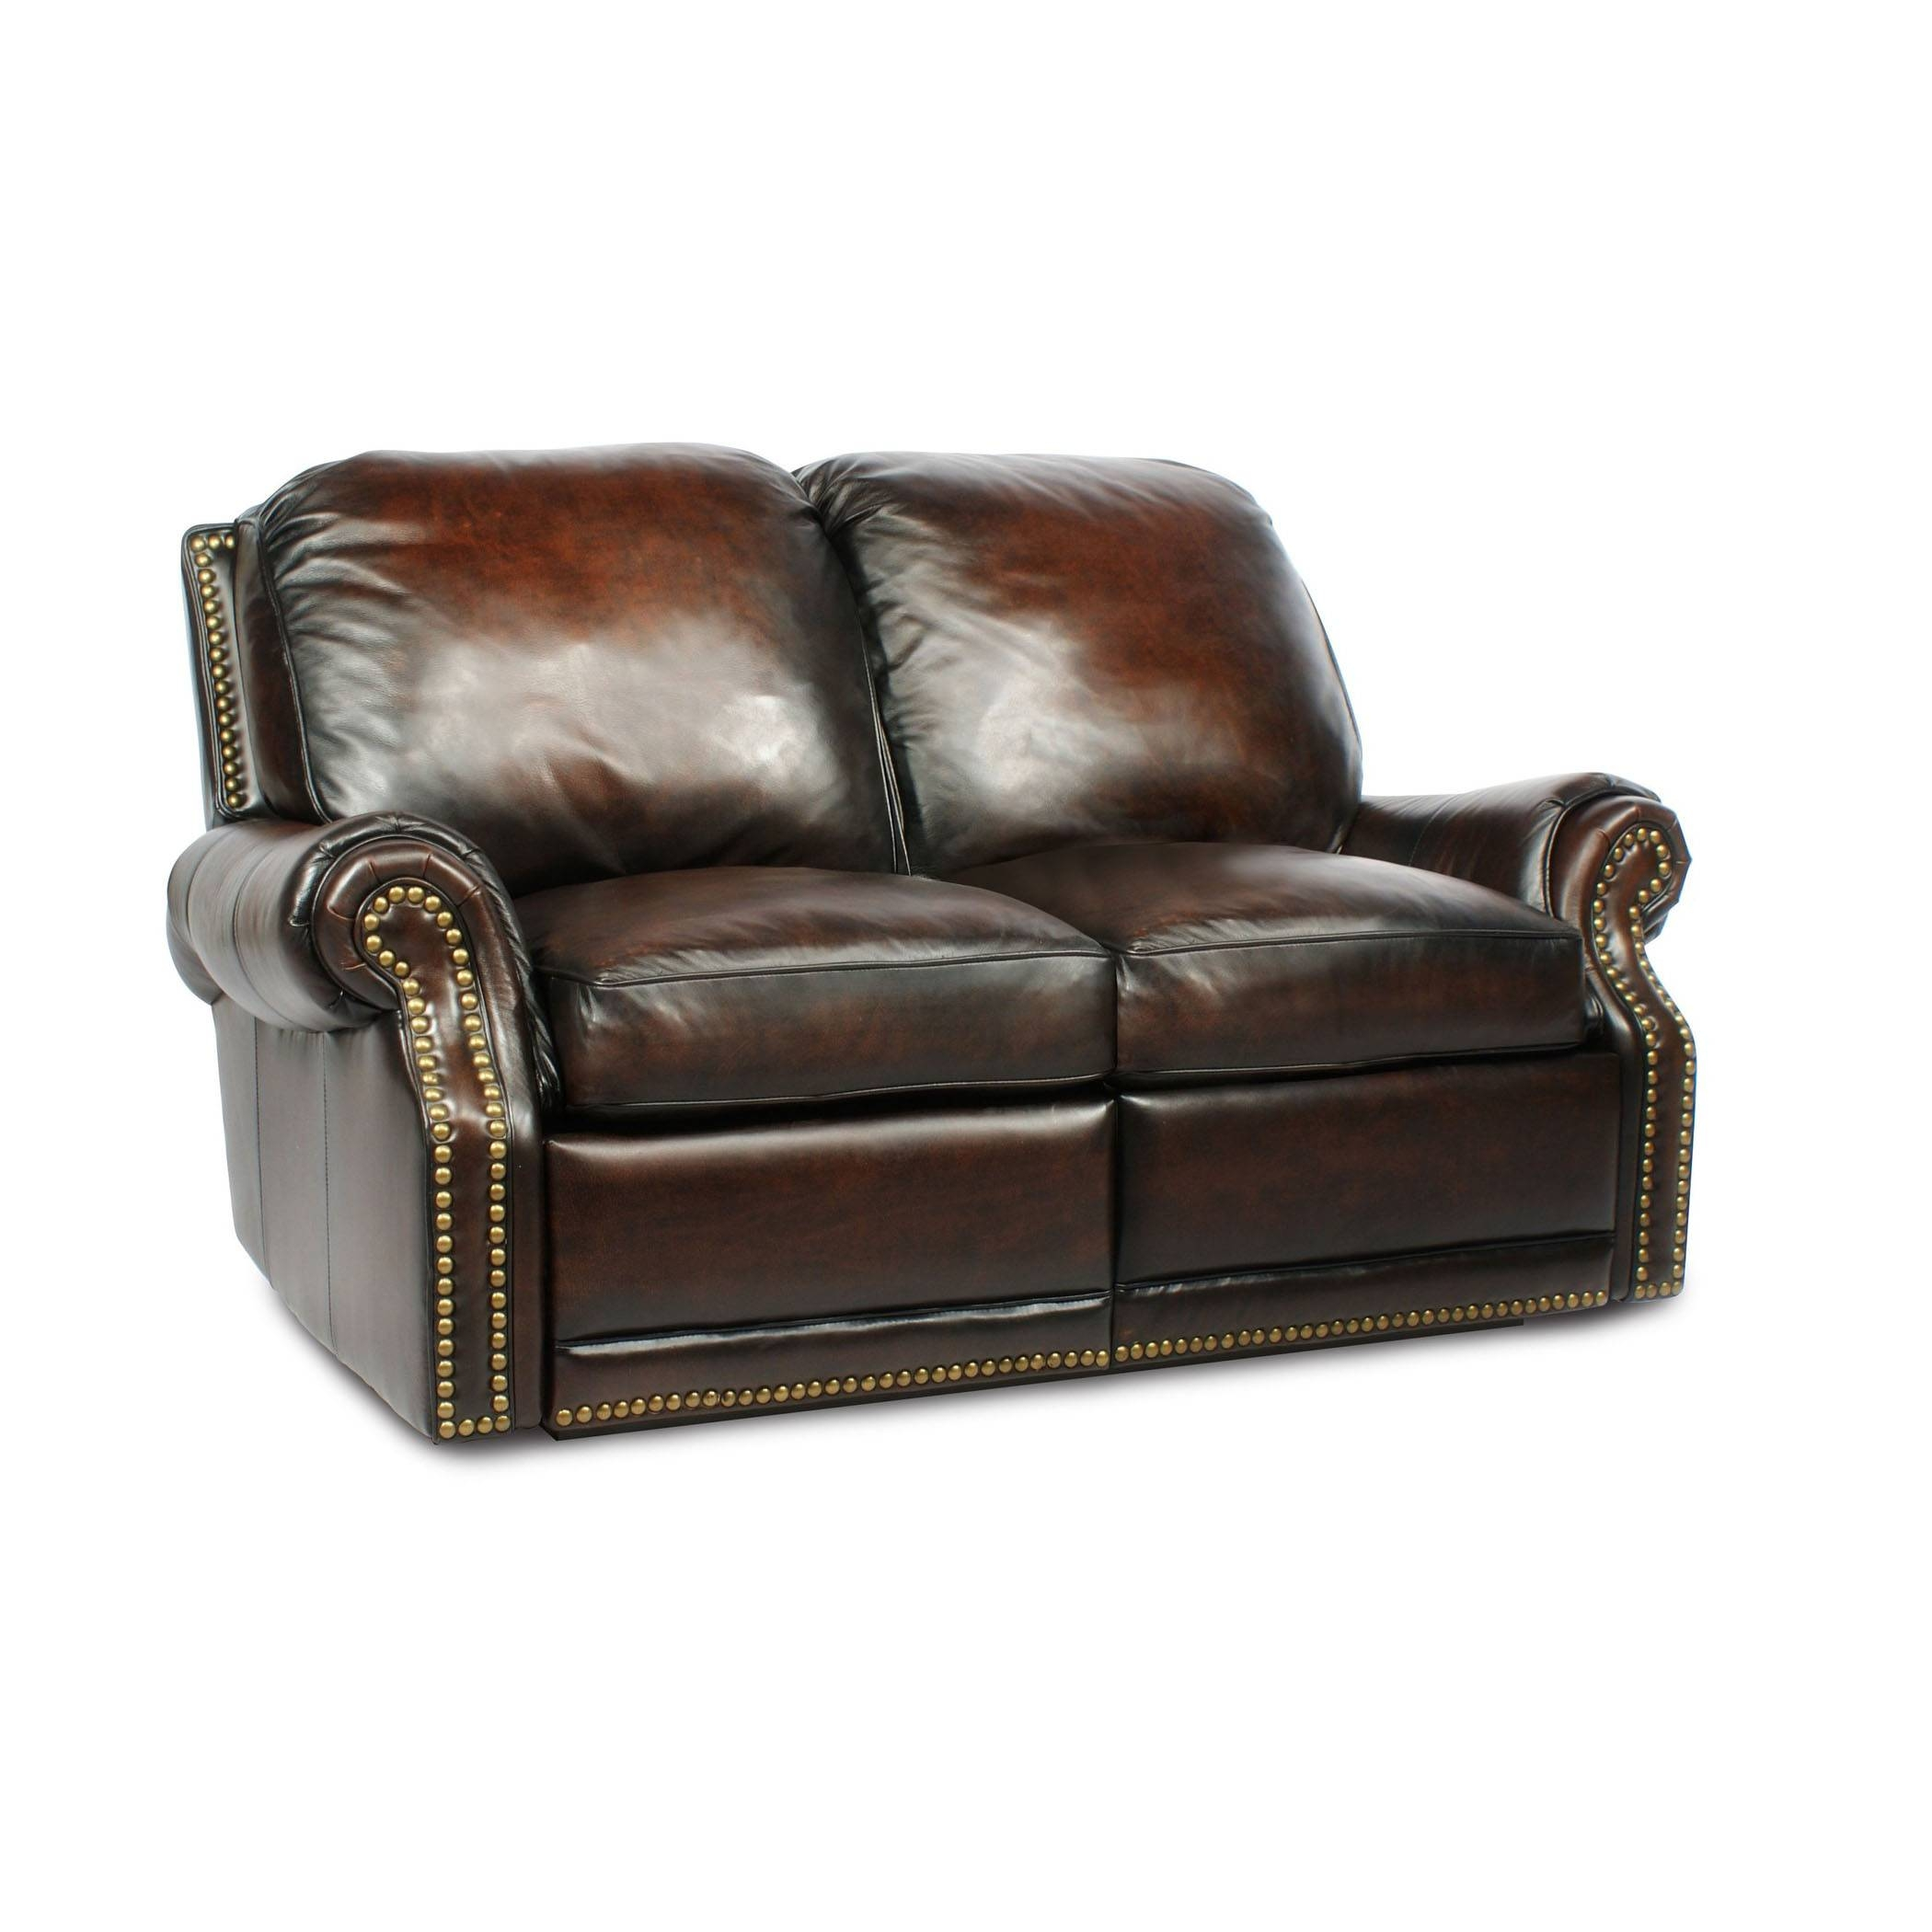 Barcalounger Premier Ii Leather 2 Seat Loveseat Sofa - Leather 2 within Barcalounger Sofas (Image 12 of 15)